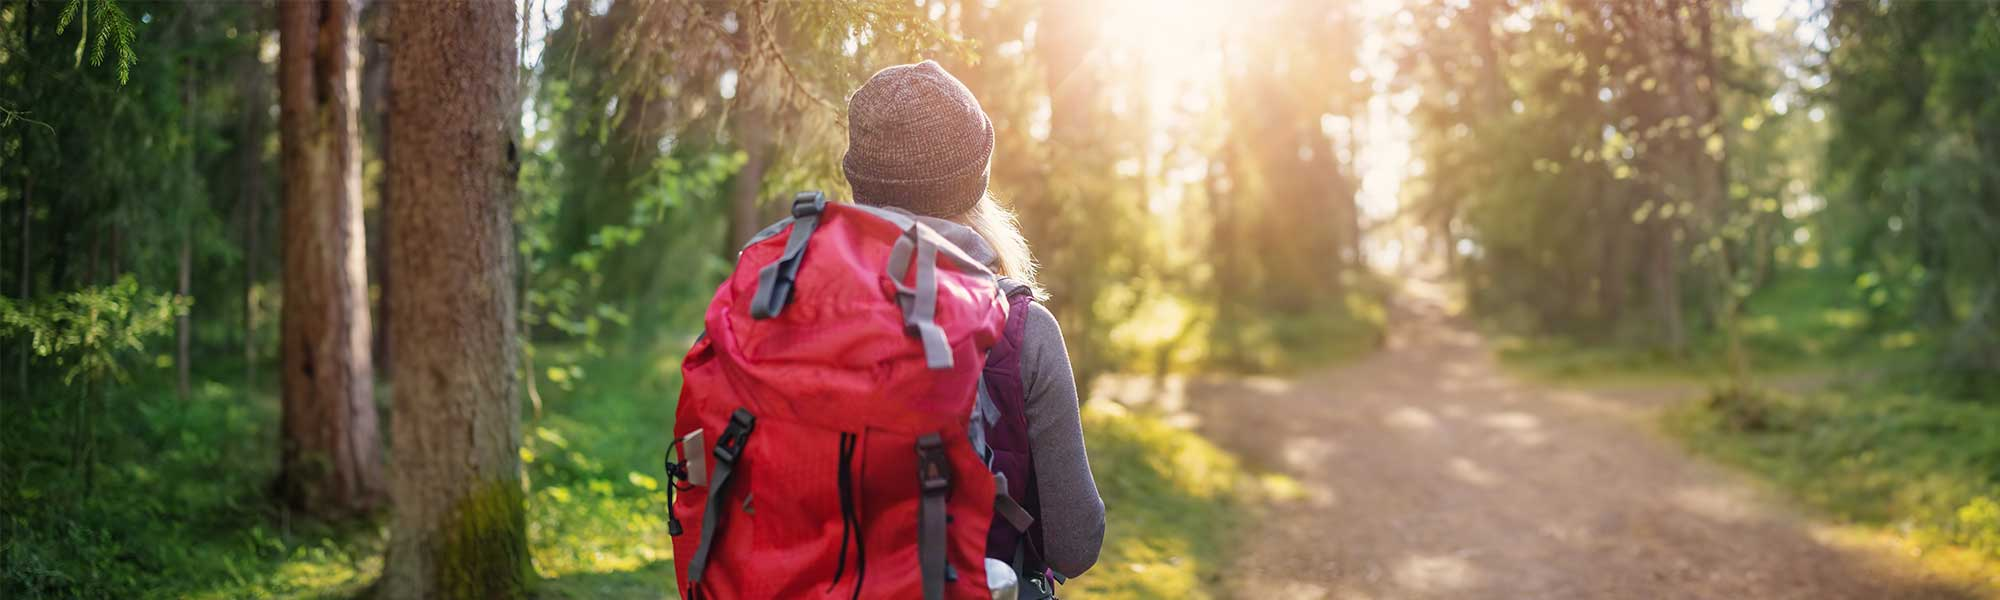 IEDC Conference Recap: Leveraging Outdoor Recreation for Economic Recovery